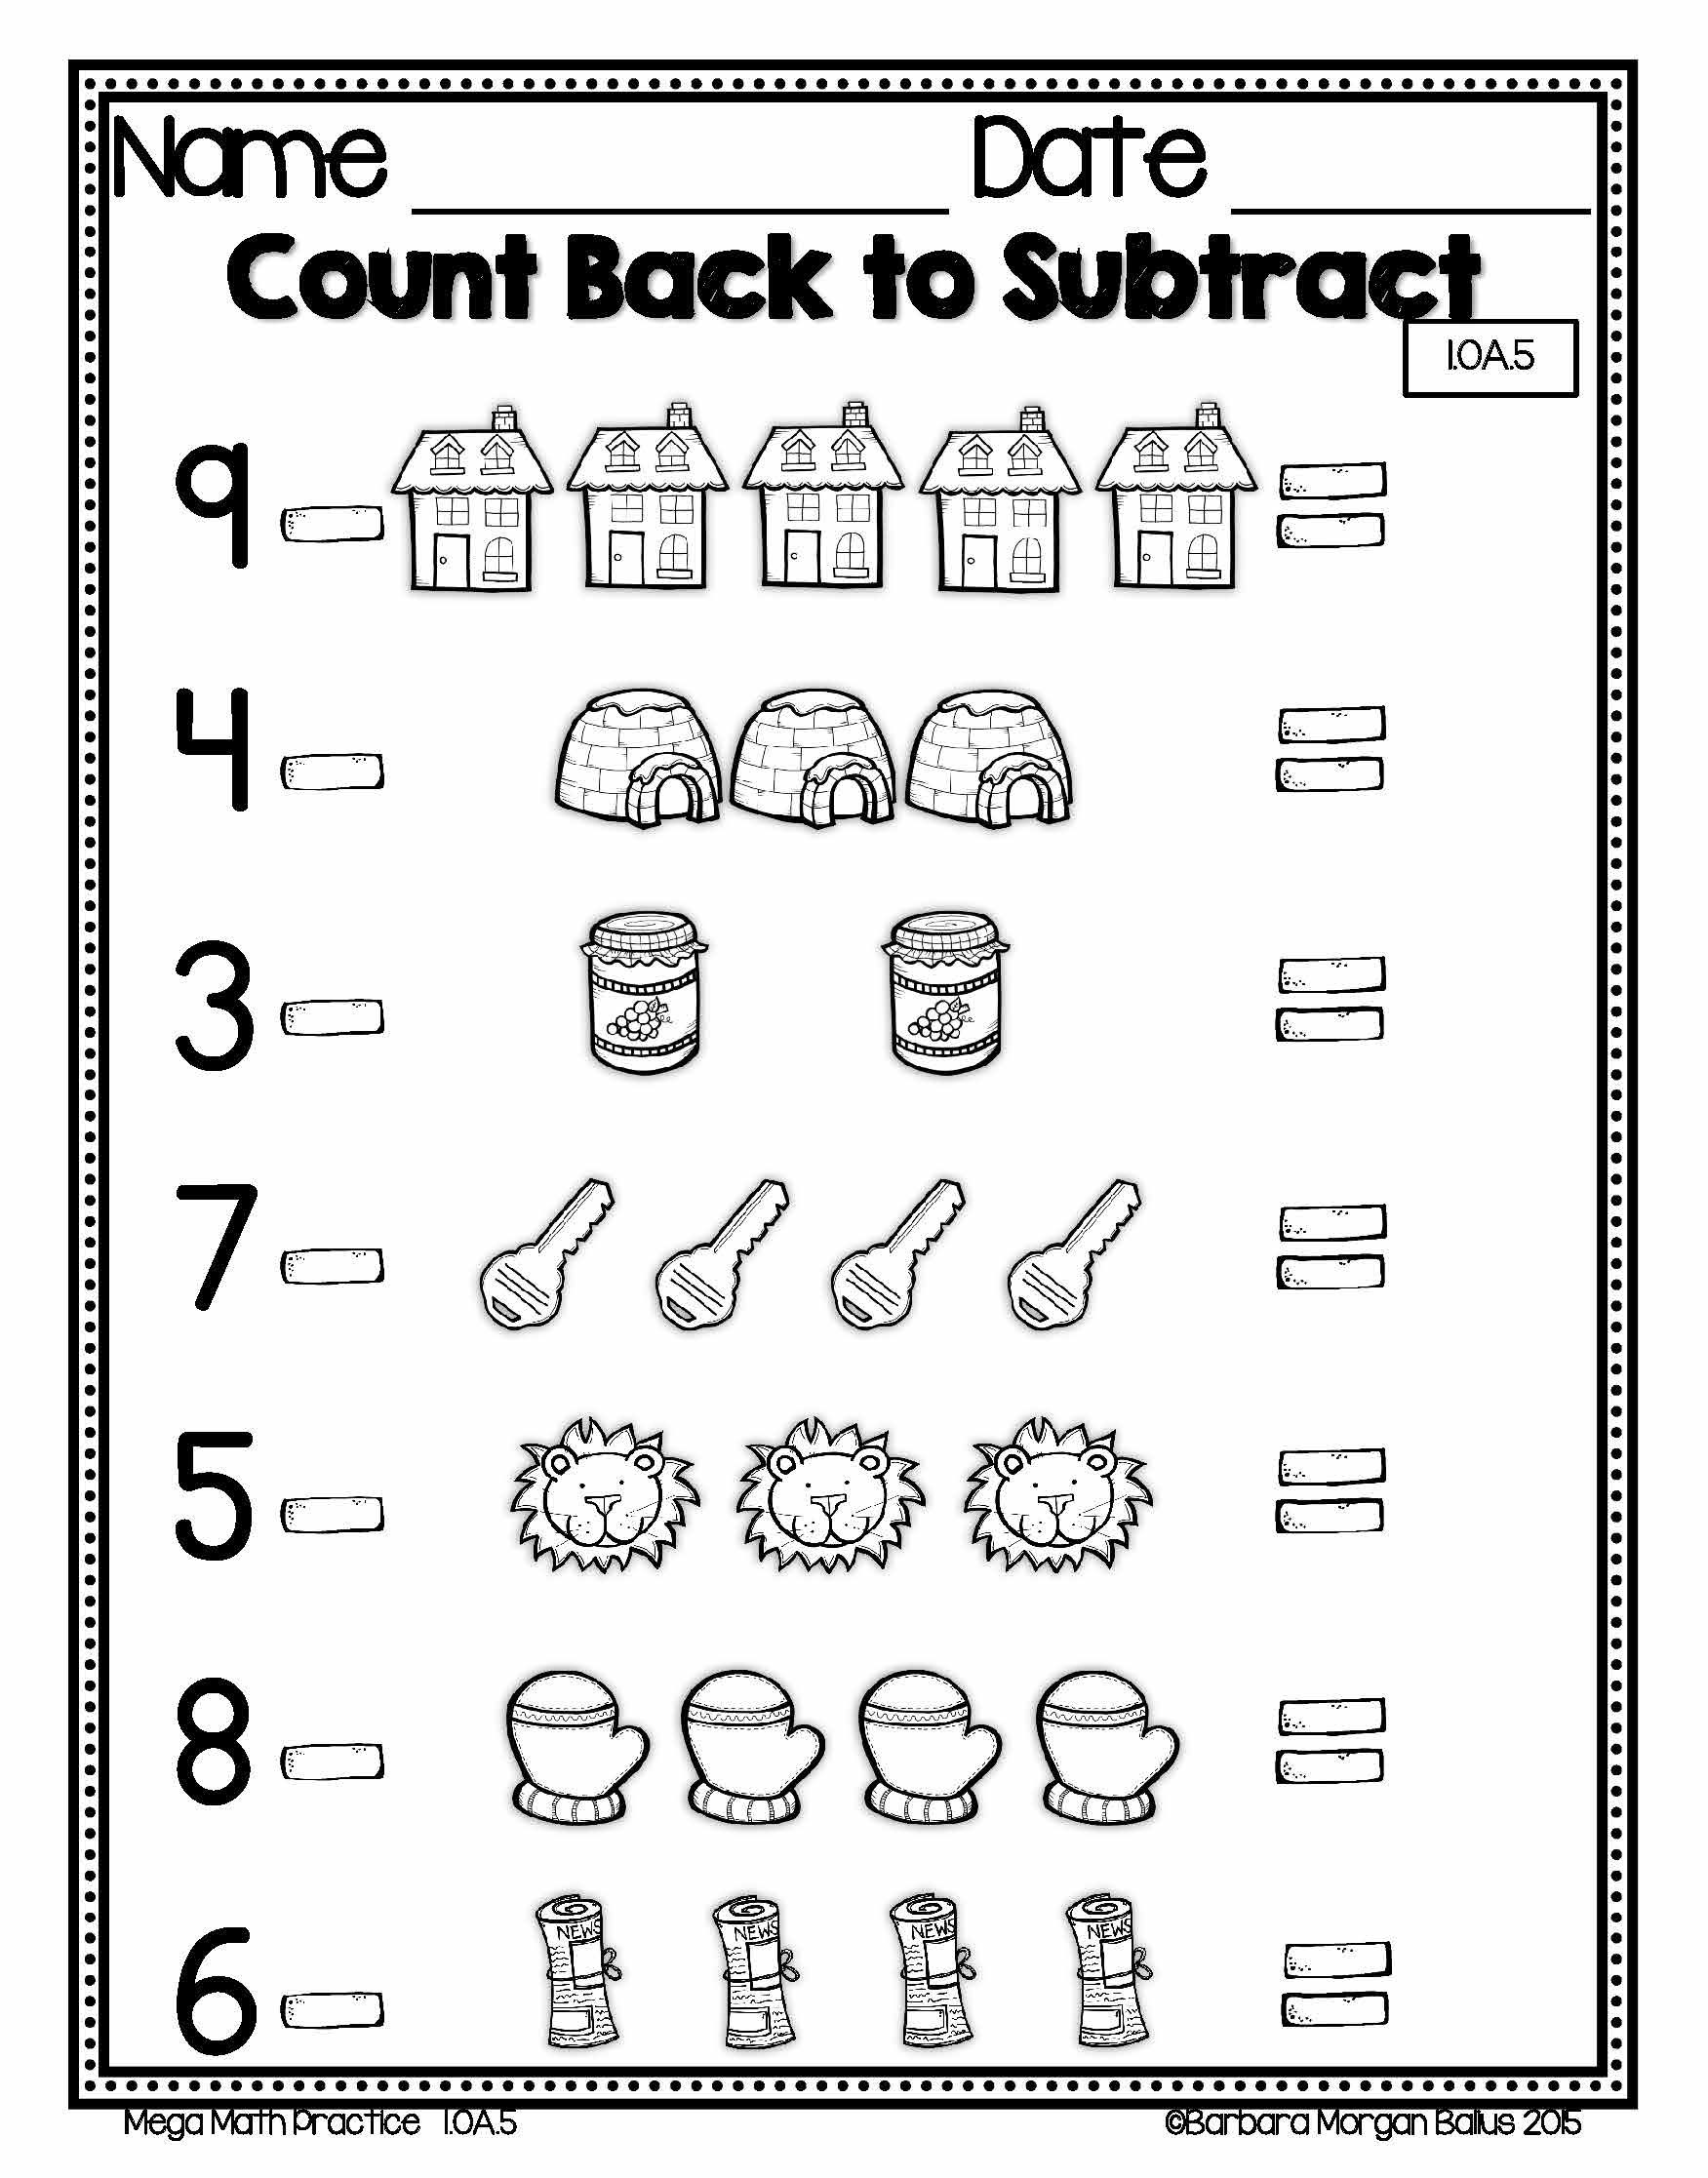 hight resolution of First Grade Number sense math practice. Counting back 1.OA.5   Mega math